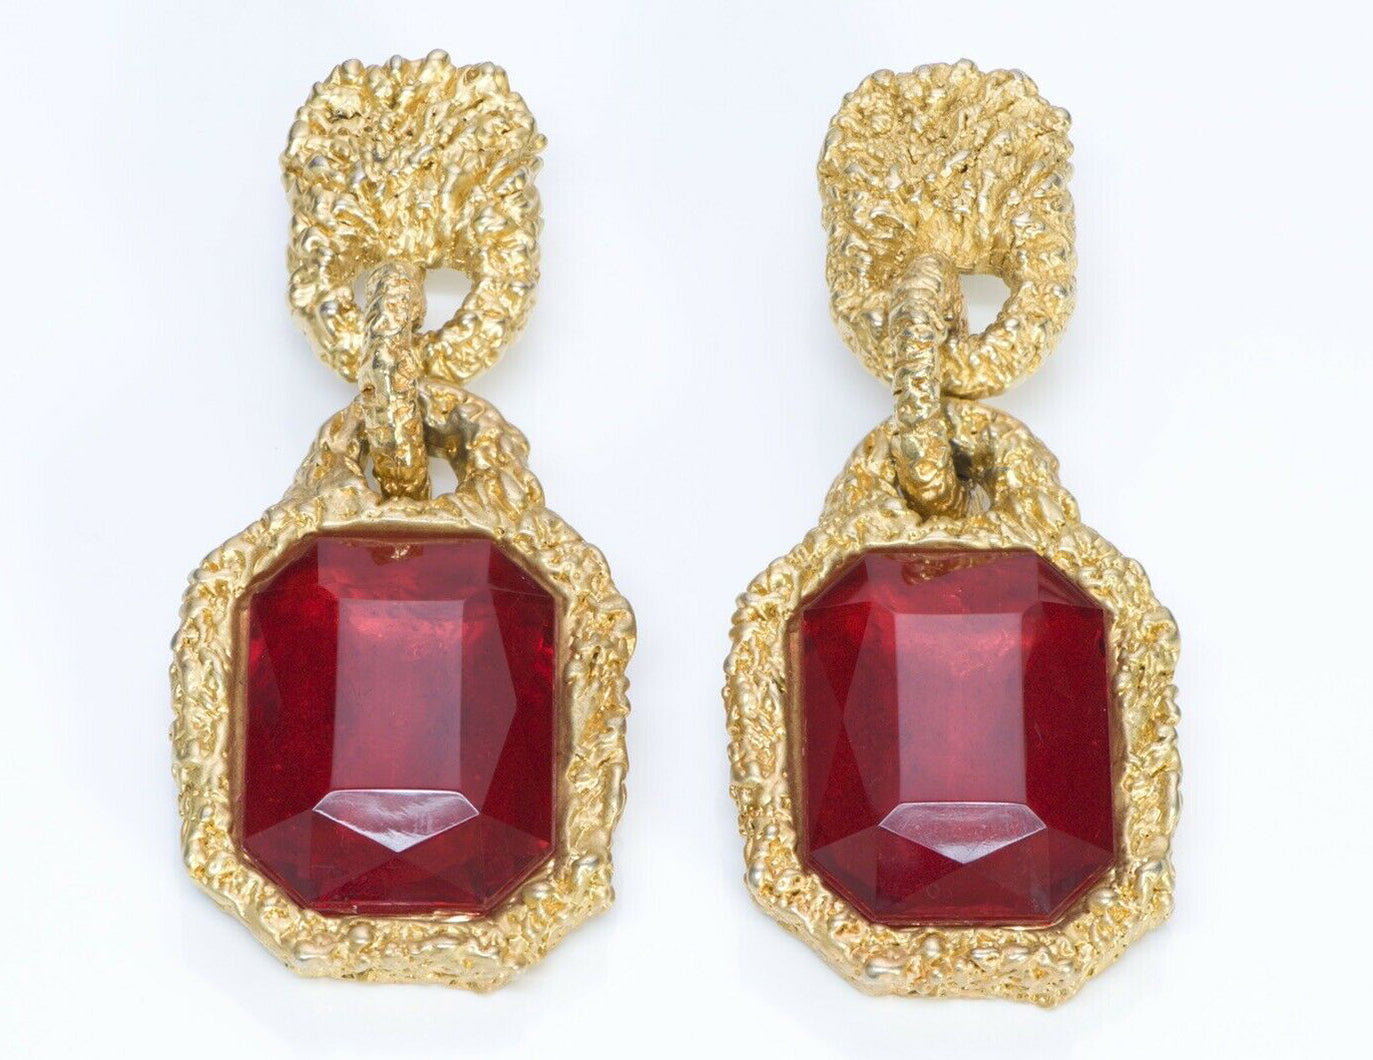 chanel-paris-1990-goossens-red-extra-long-earrings